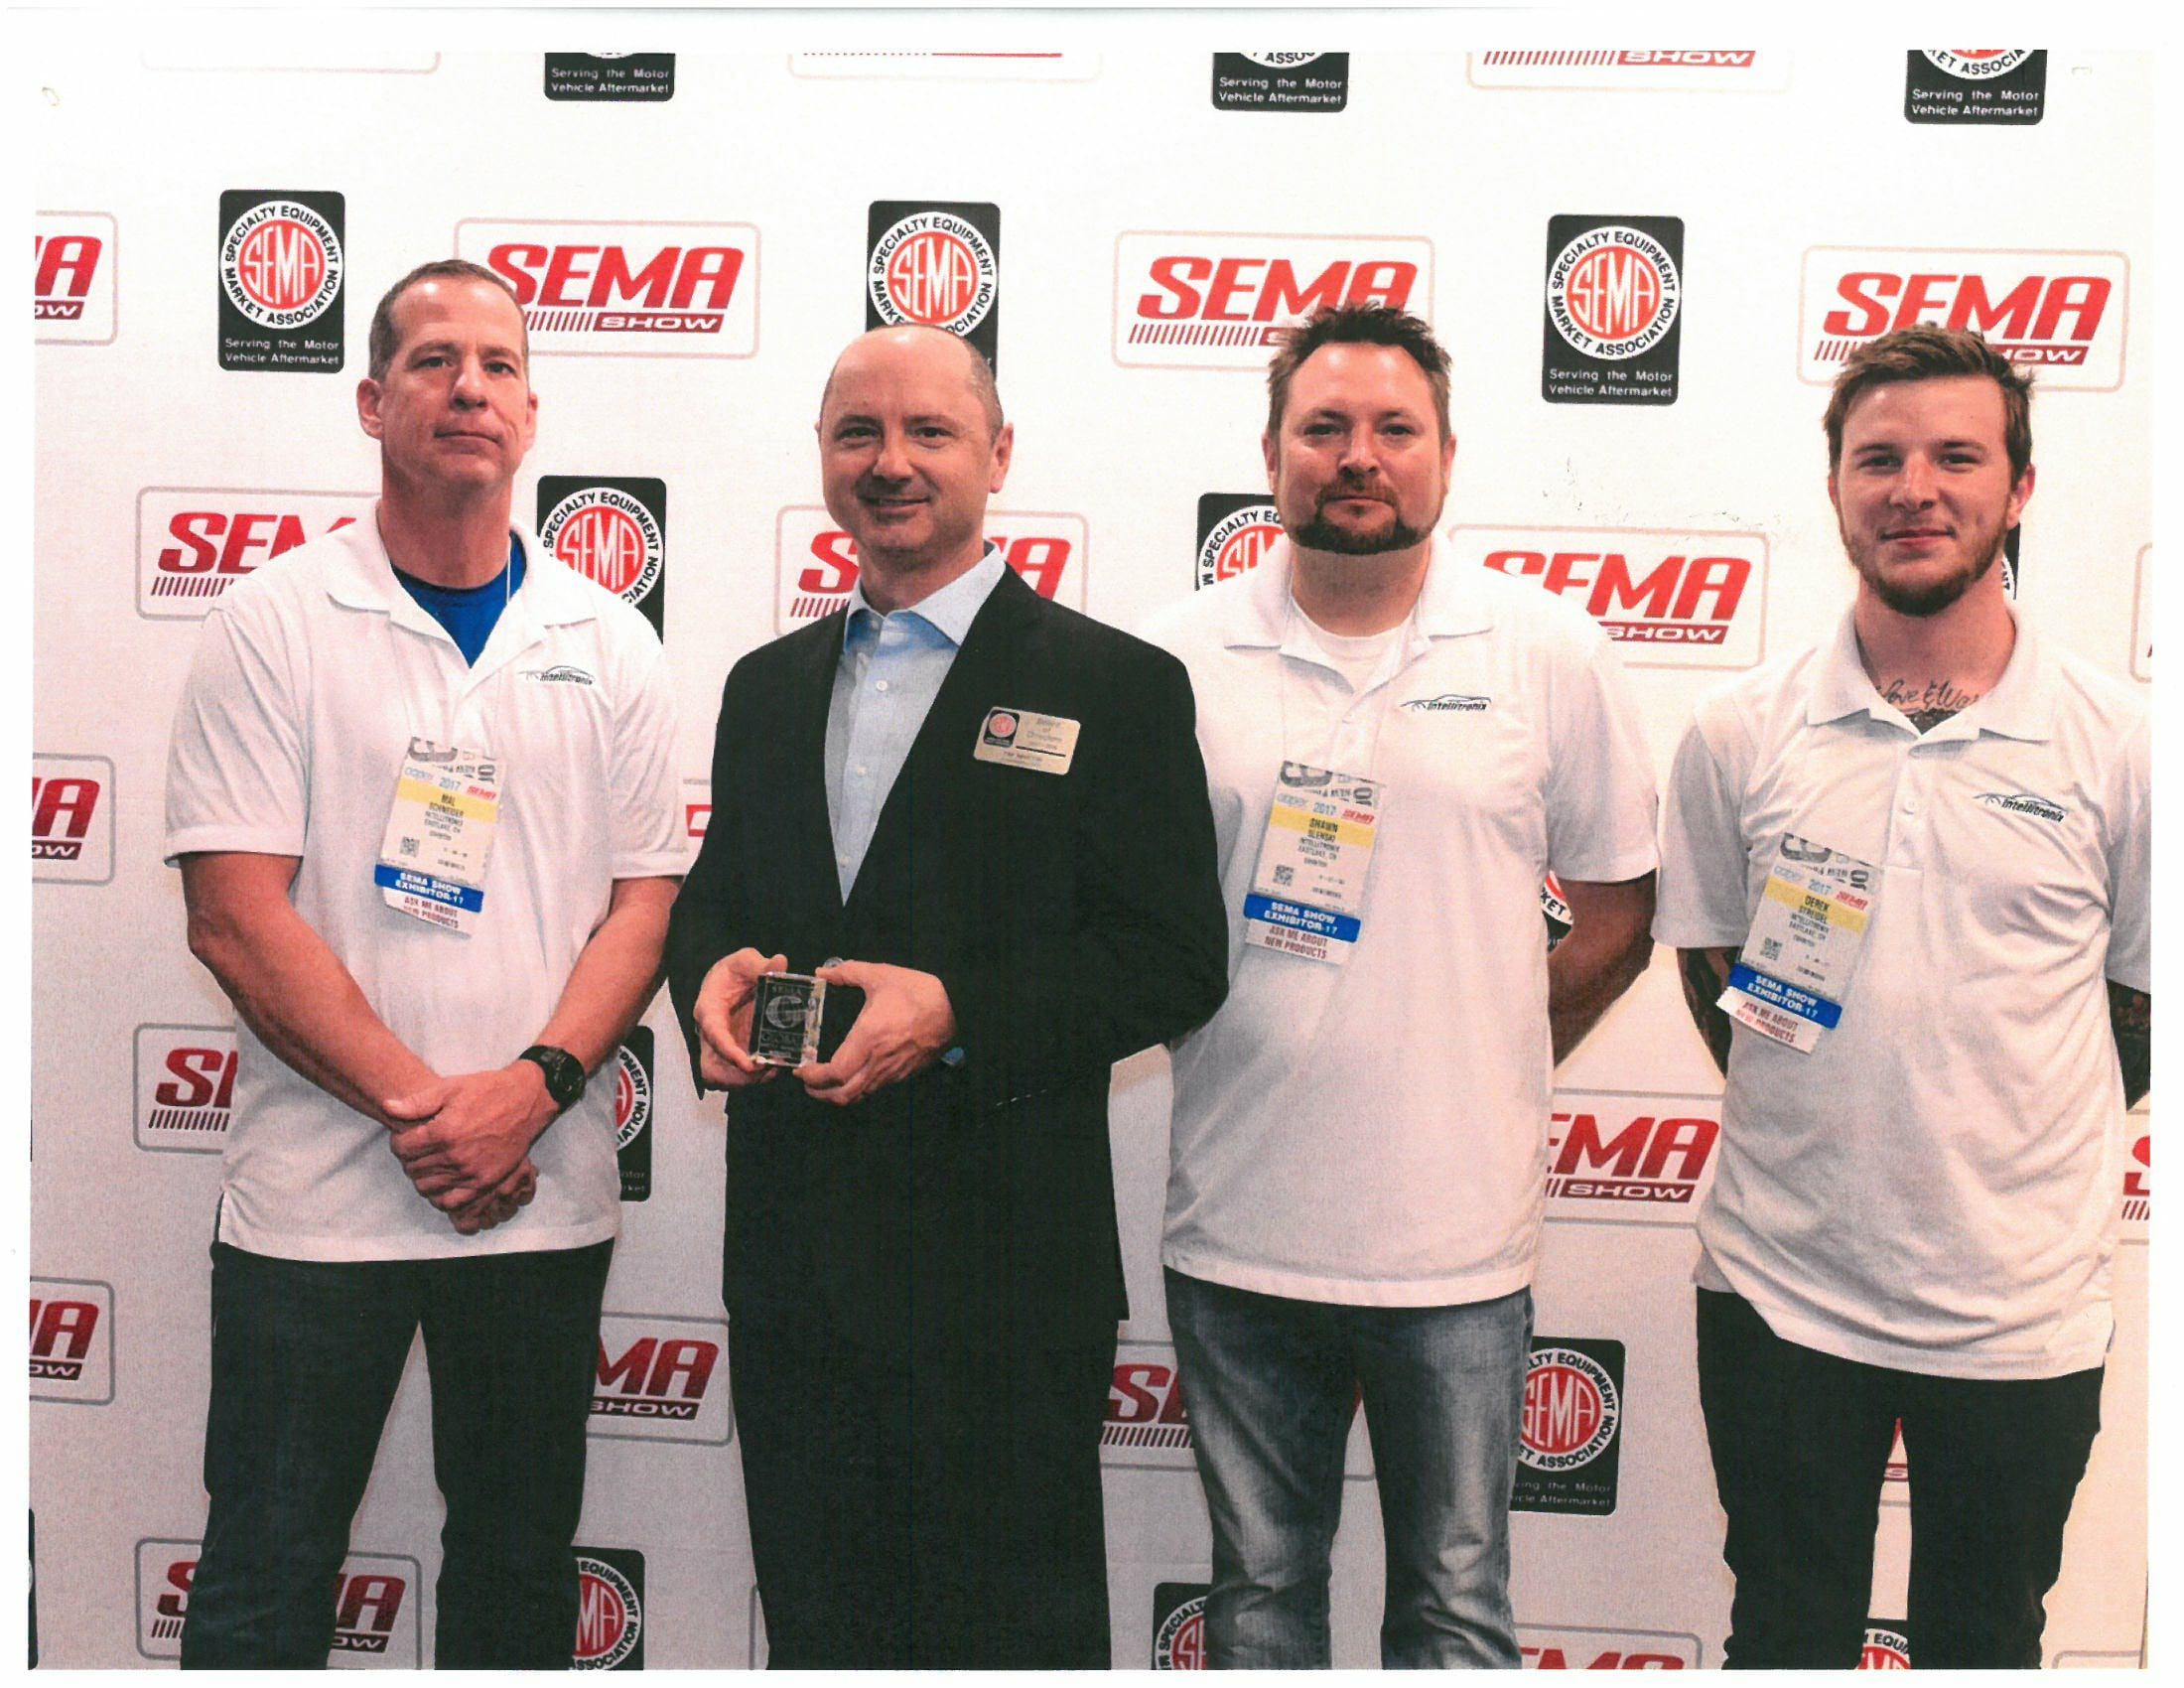 Intellitronix Corp. Takes Home a Big Win at Their First SEMA Appearance in Las Vegas